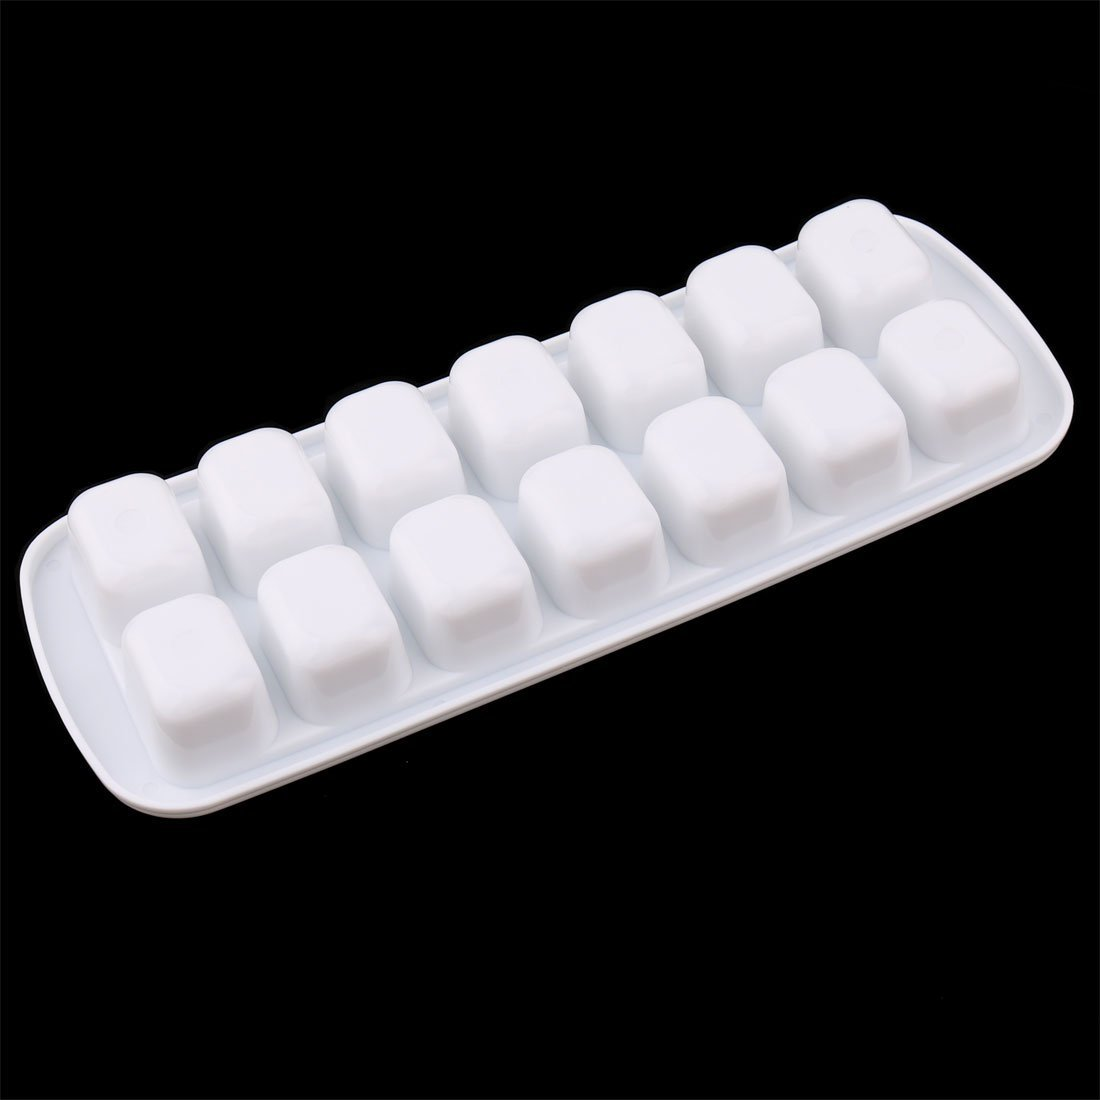 Amazon.com: DealMux Plastic Rectângulo Kitchen 14 Compartimento Ice Cube Tray Mofo Branco: Kitchen & Dining